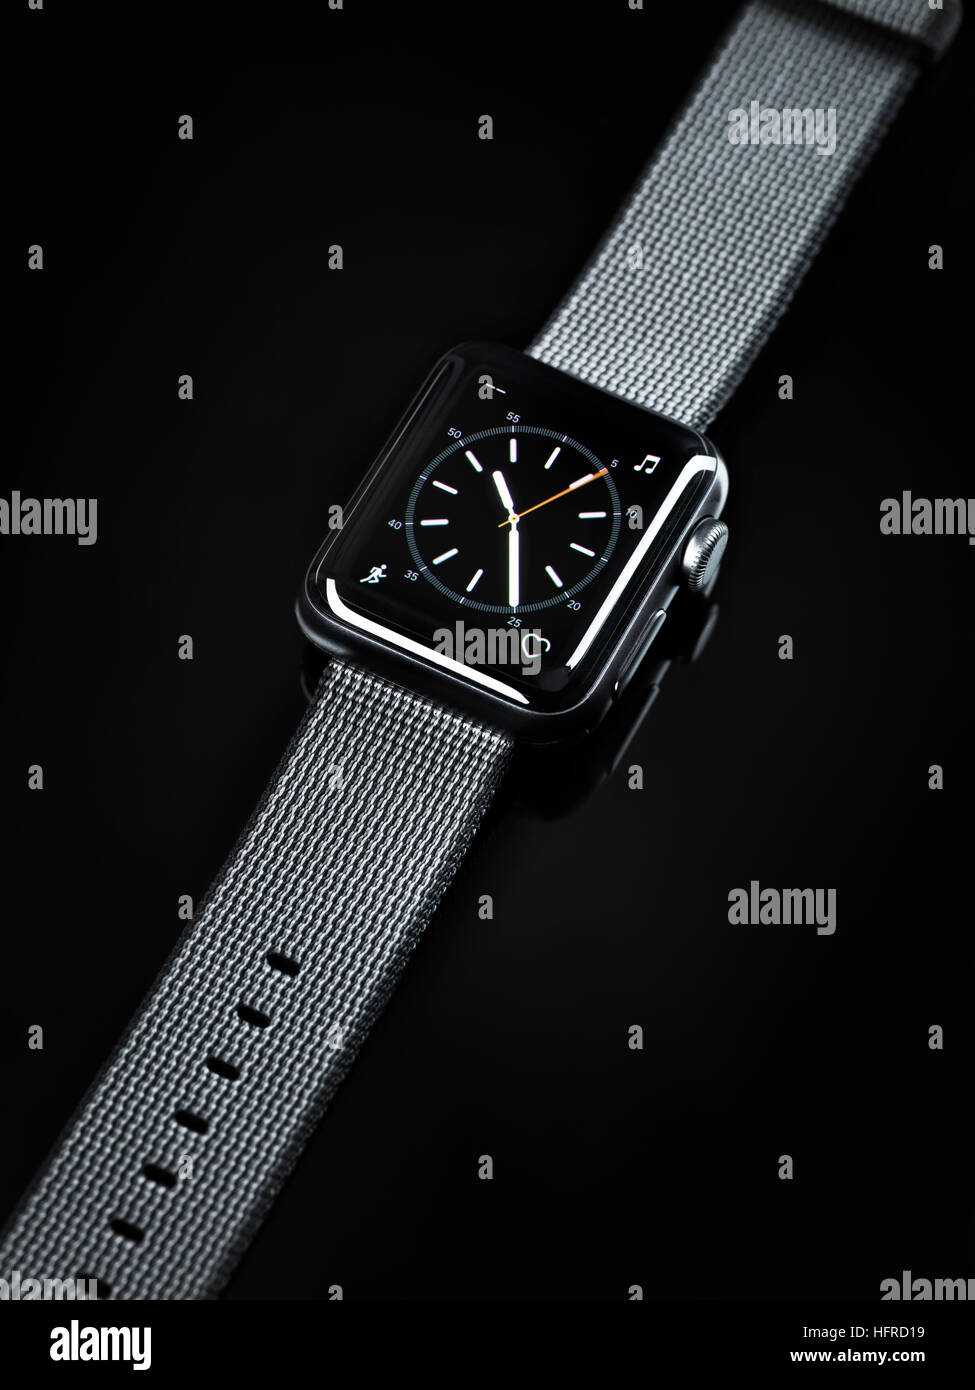 Apple Watch, smartwatch with analogue clock dial on display - Stock Image